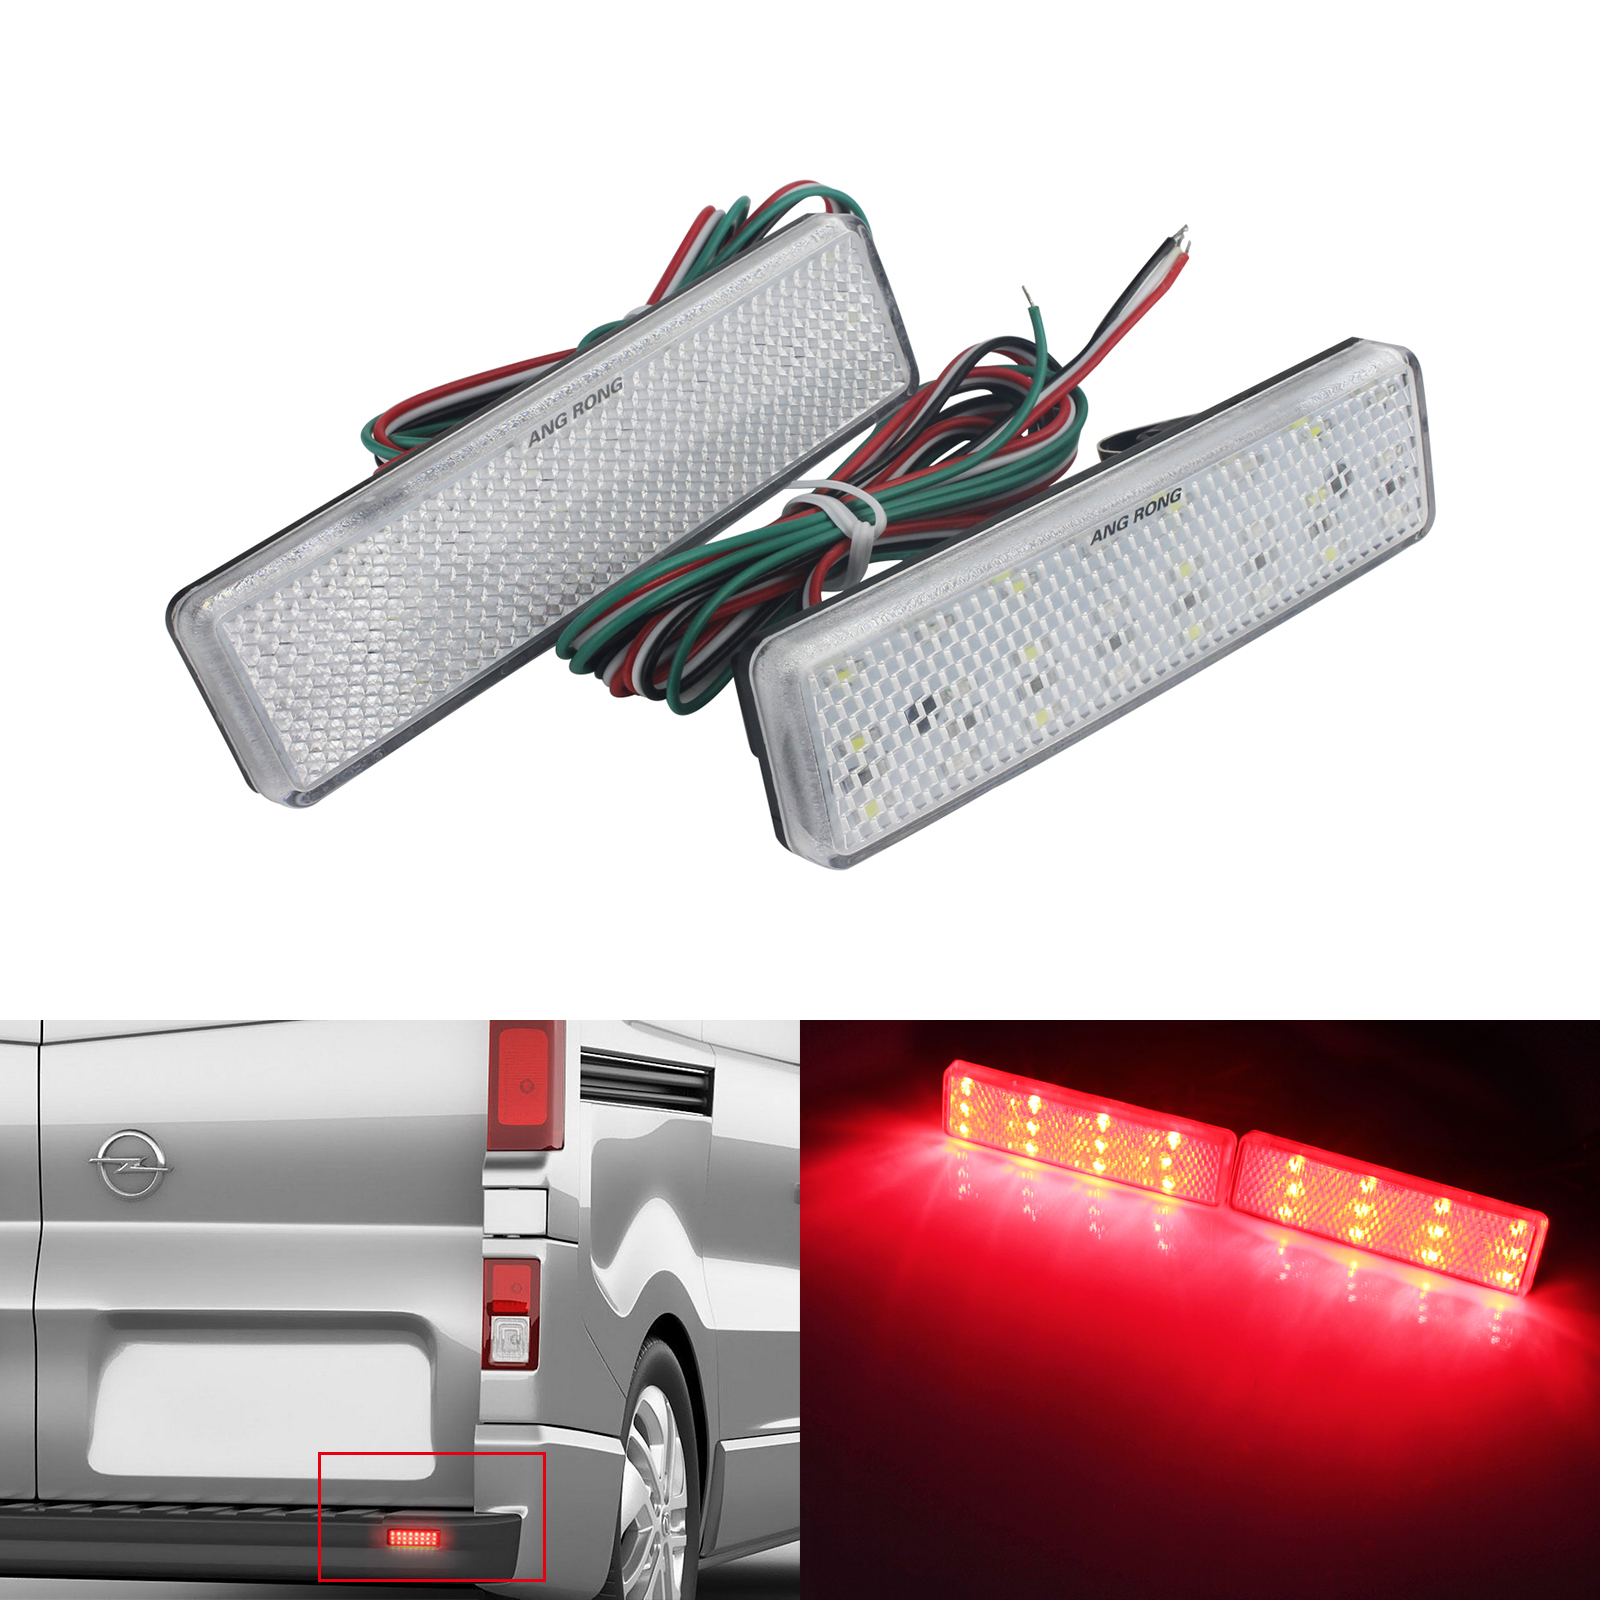 Angrong 2x Rear Bumper Reflector Led Brake Stop Light Black Lens For